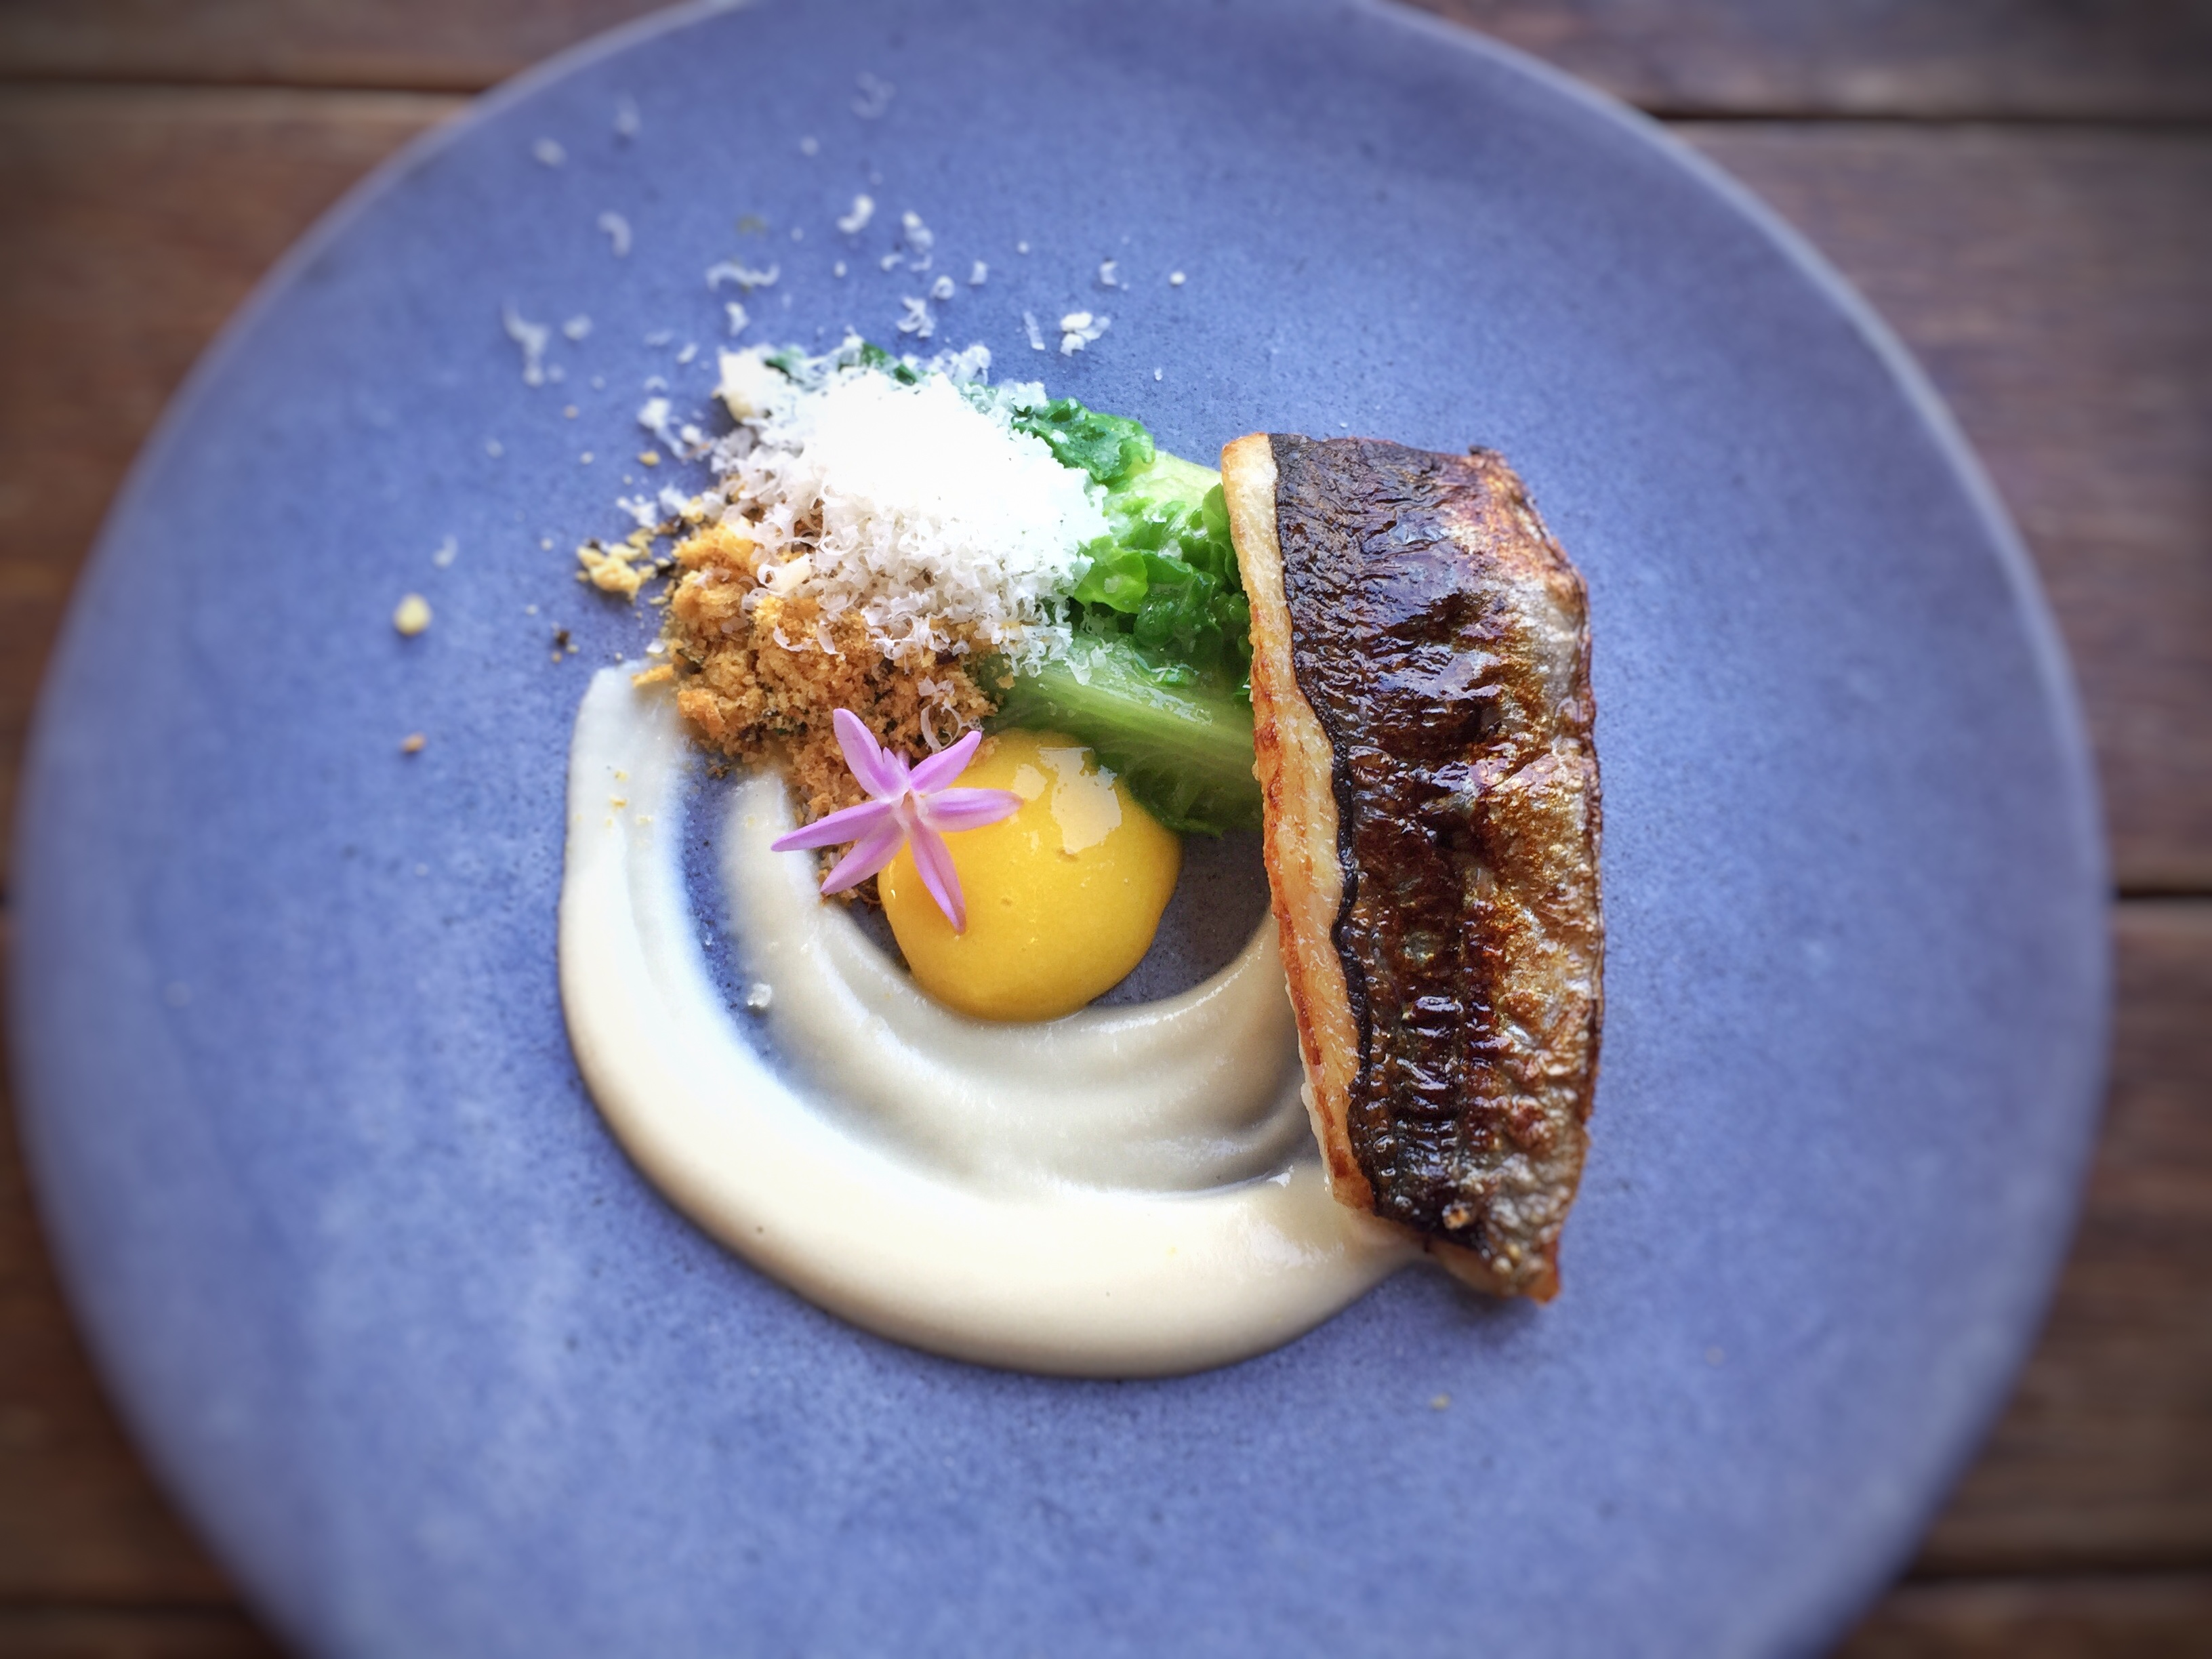 Jack mackerel fillet with egg yolk, creamy sauce, and romaine lettuce garnish